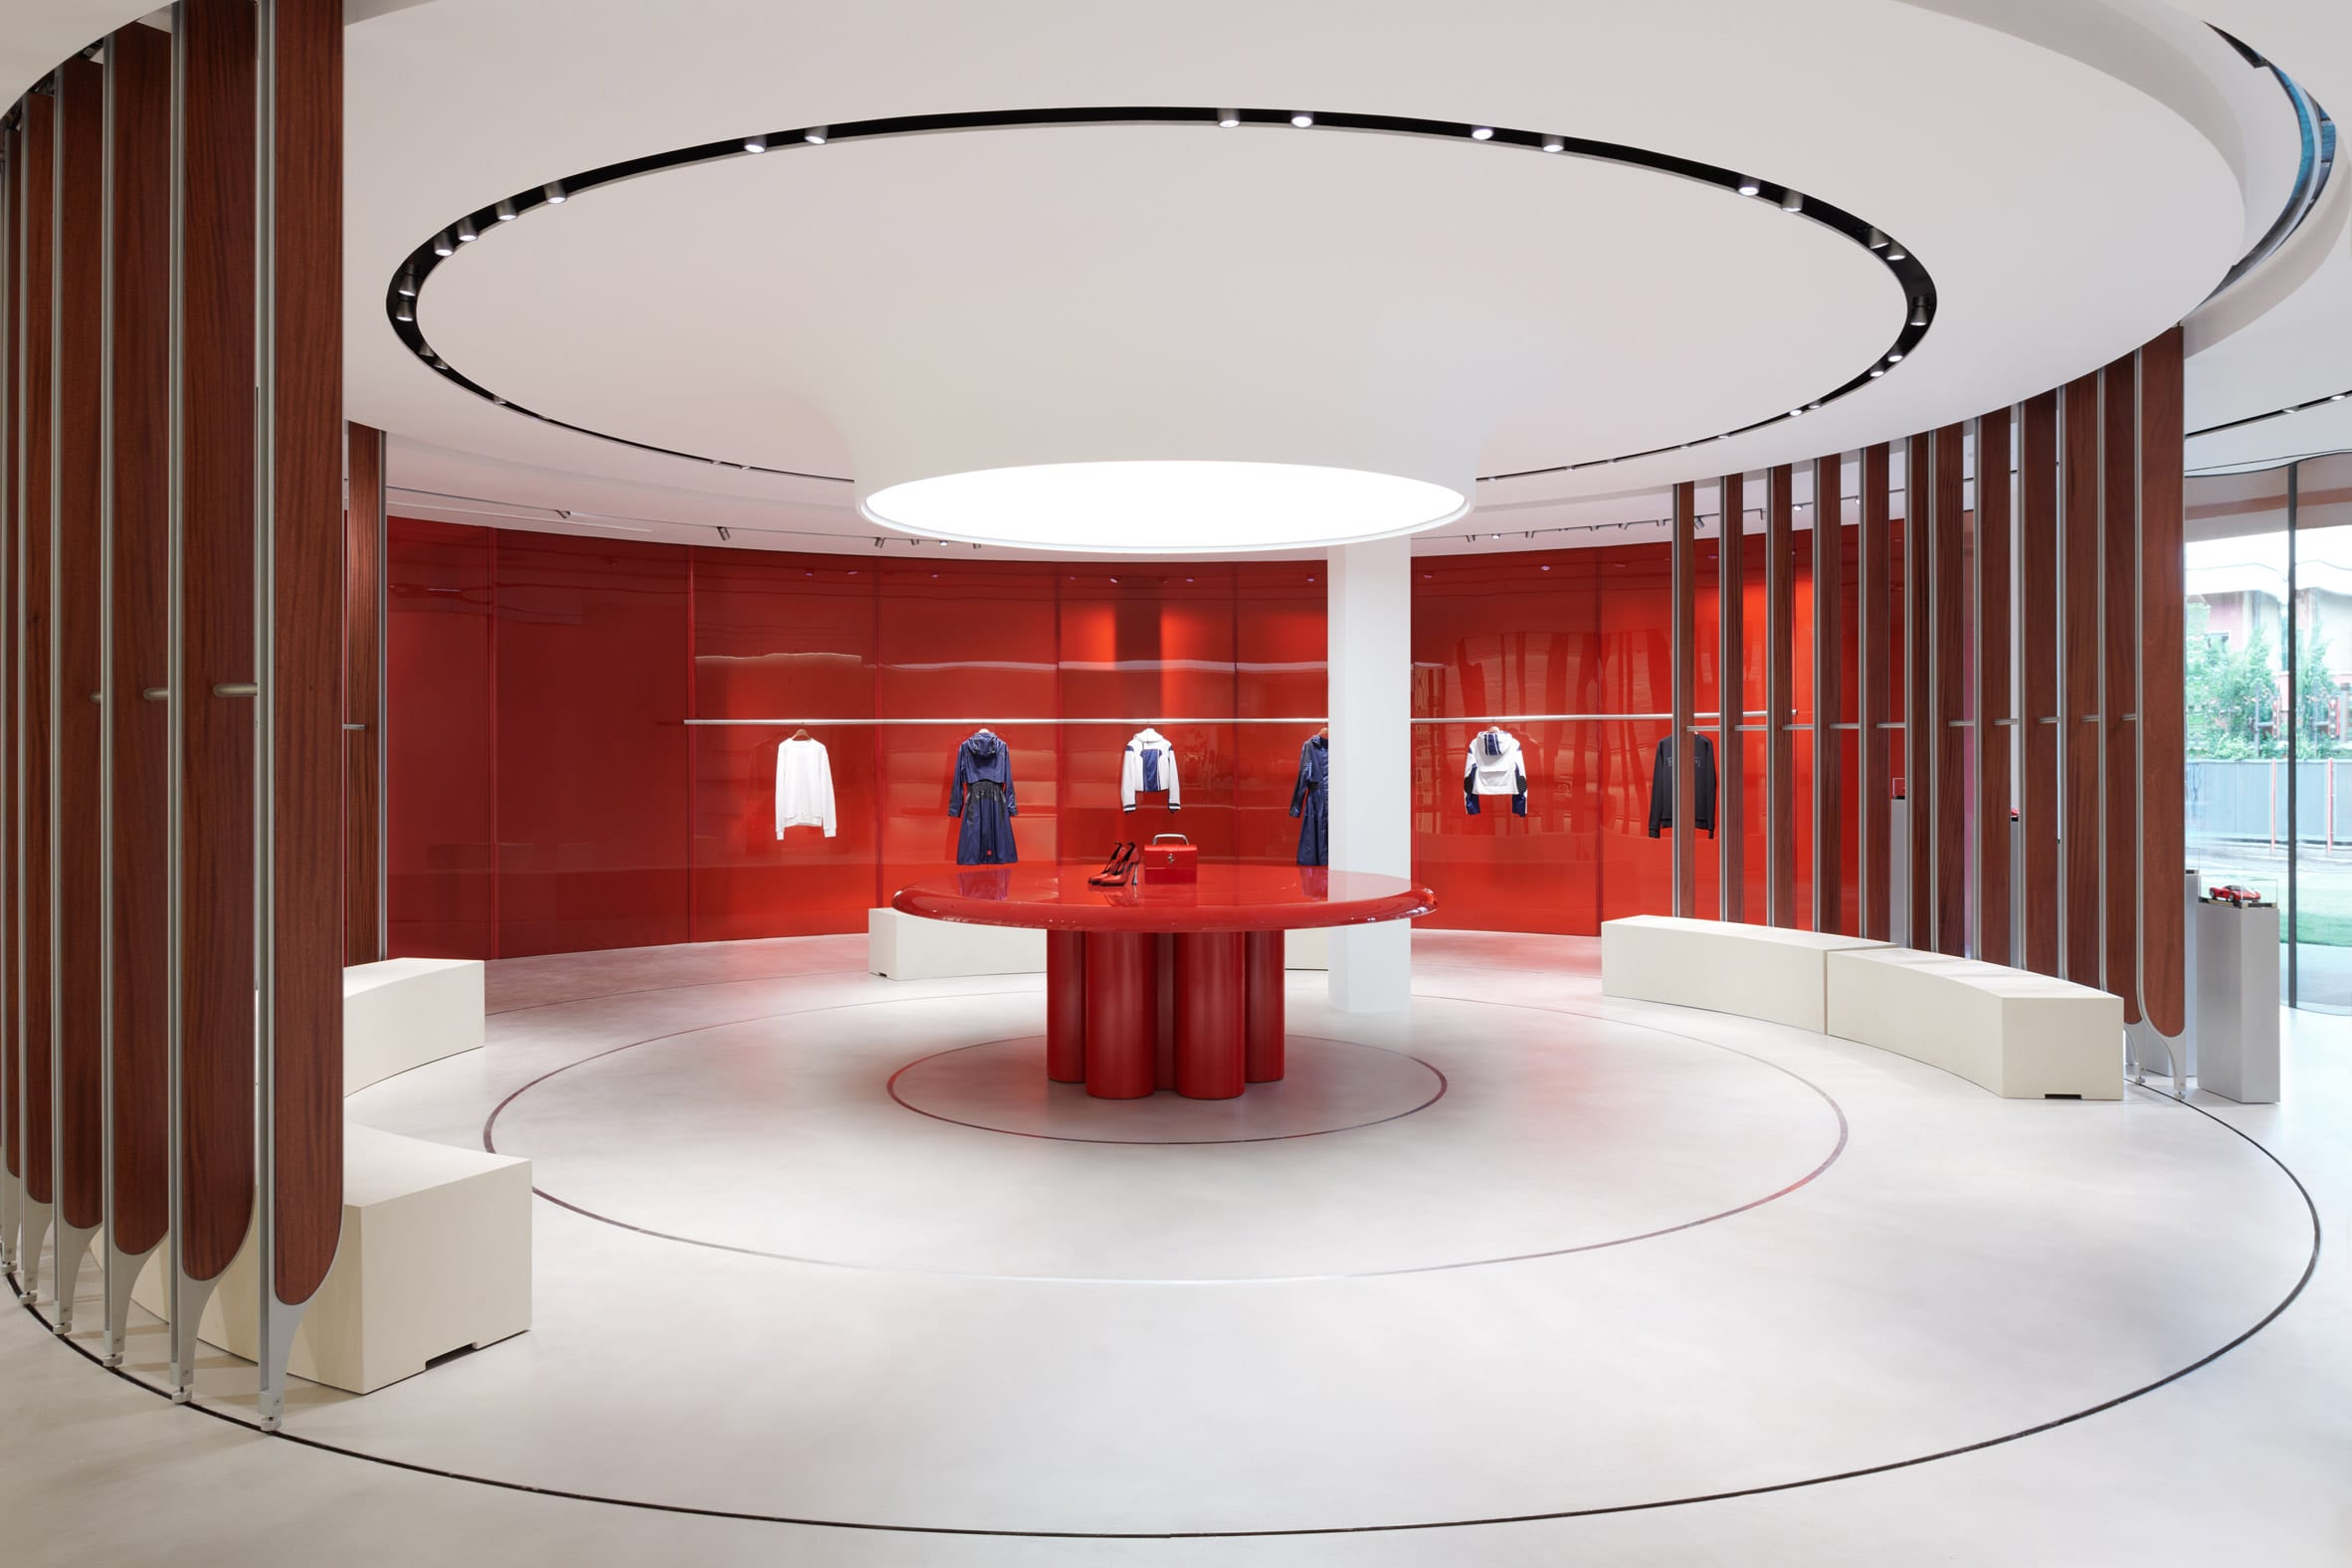 Display stand surrounded by red glass wall in store interior by Sybarite